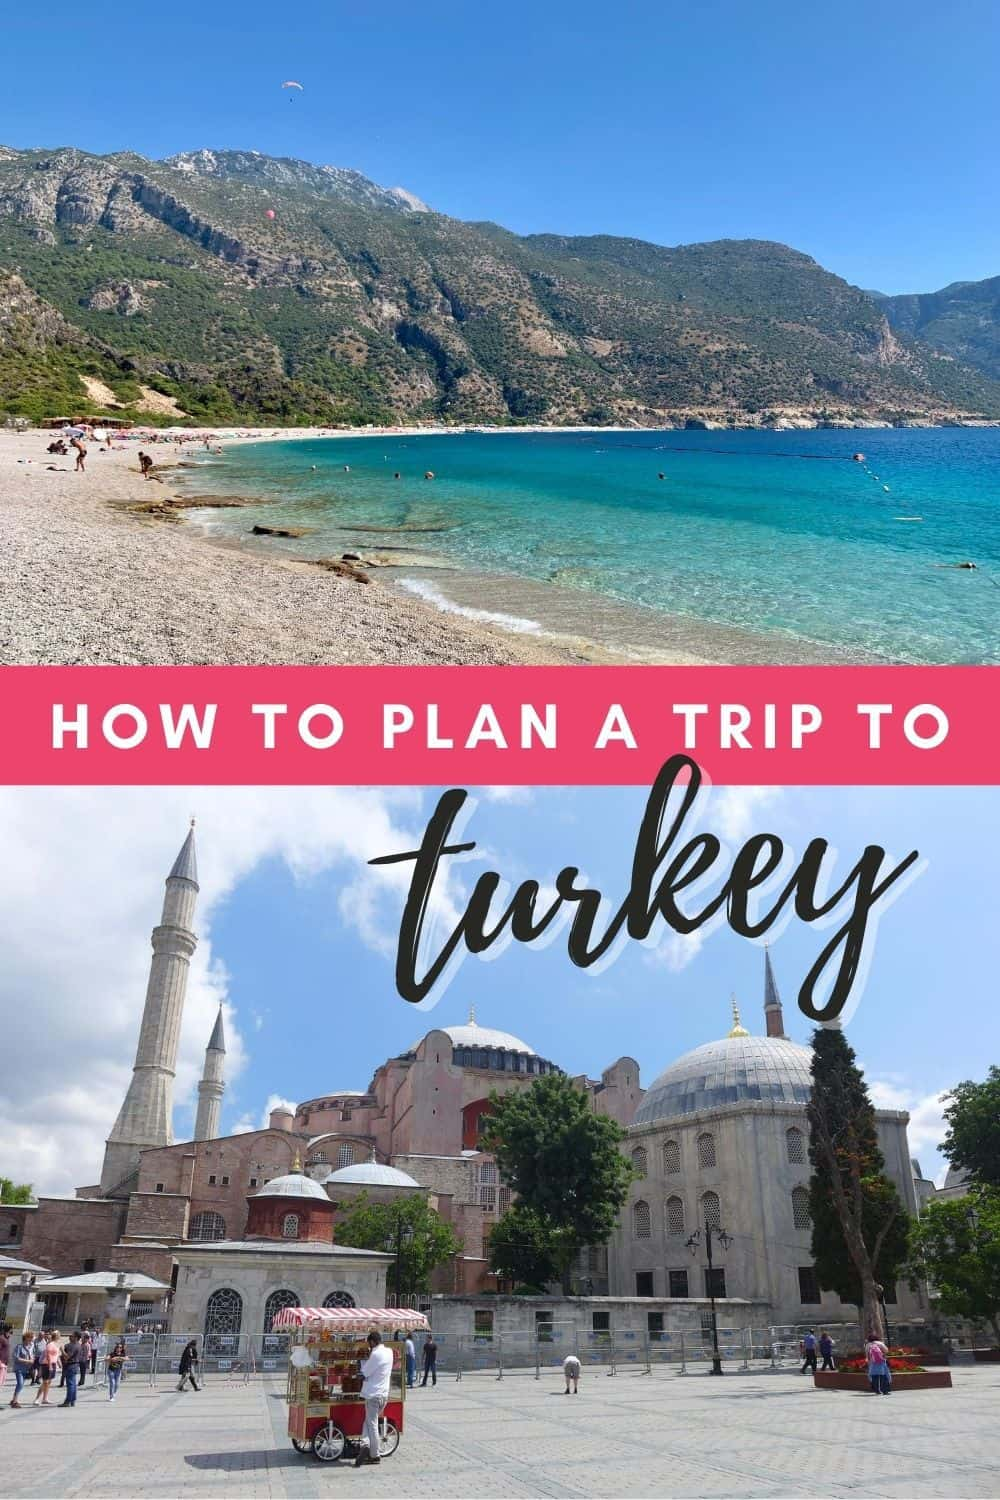 Turkey Trip Planning: A Detailed Guide for First-Timers | How to plan a trip to Turkey, including detailed tips on visas, currency, safety, food, where to stay, what to eat, what to wear in Turkey, transportation, and more. Turkey travel tips, where to go in Turkey, Turkey trip planning tips #turkey #traveltips #travelguide